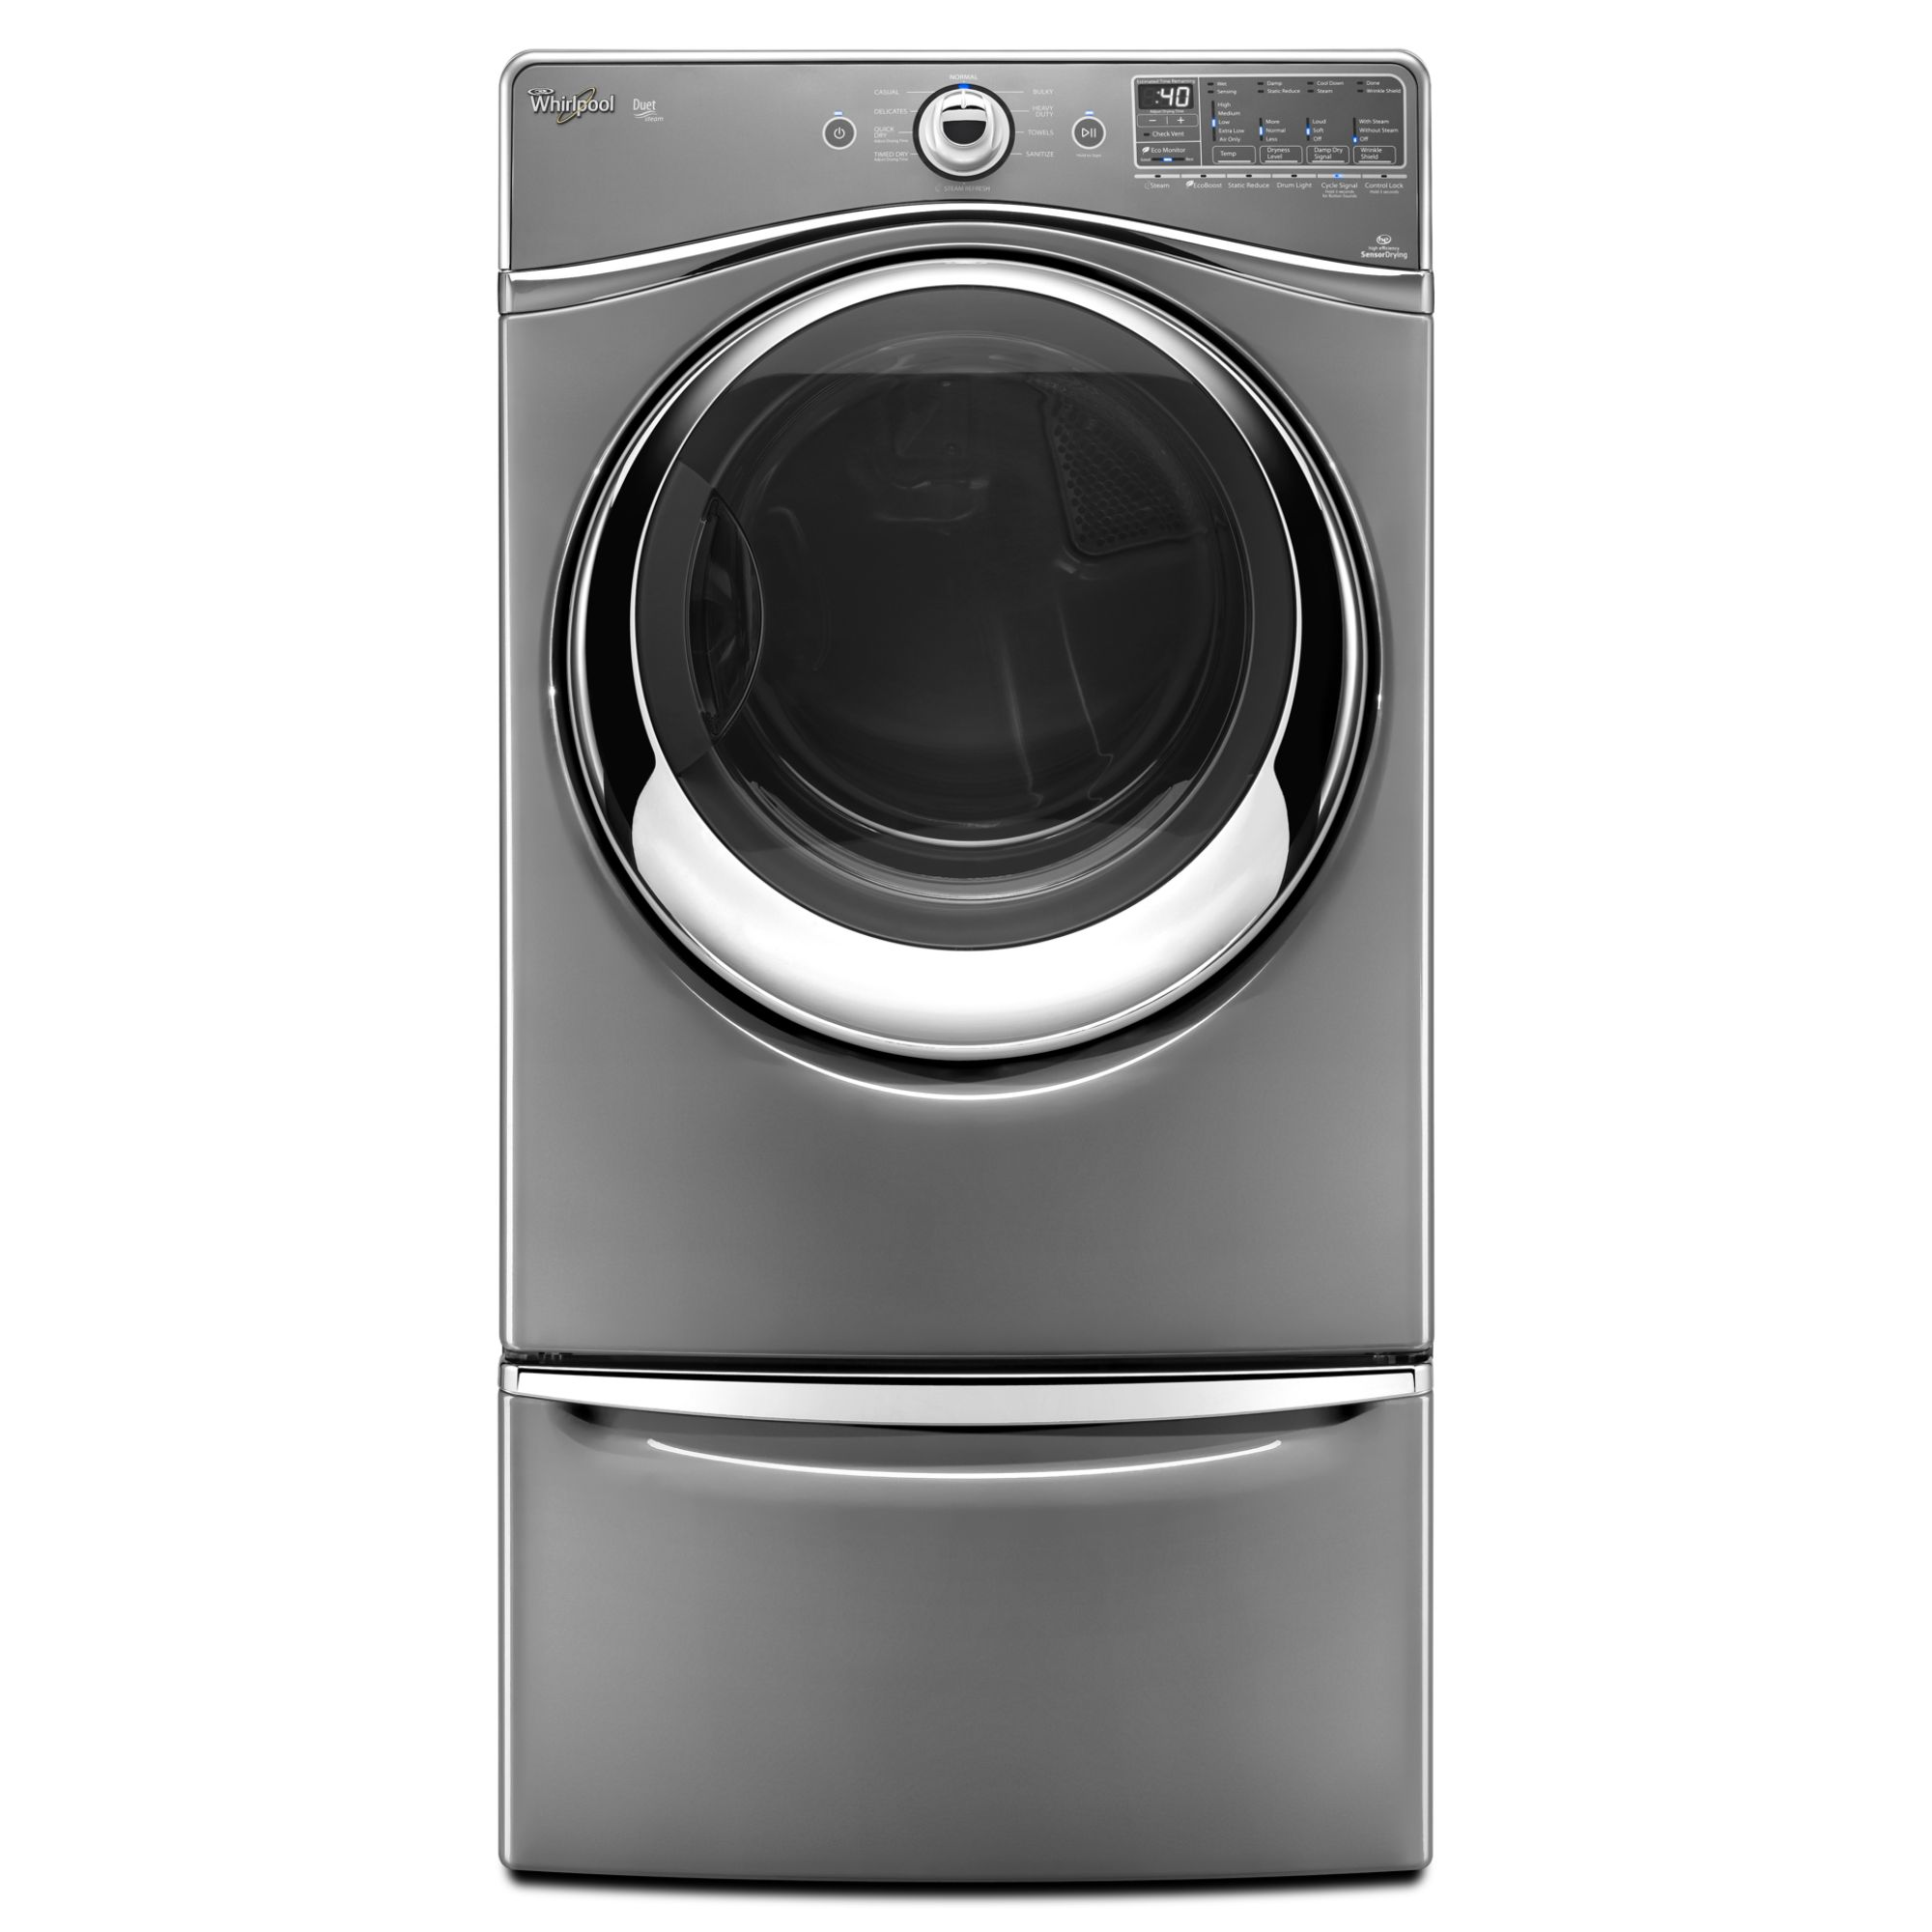 Whirlpool Duet® 7.4 cu. ft. Gas Dryer w/ Tap Touch Controls - Chrome Shadow